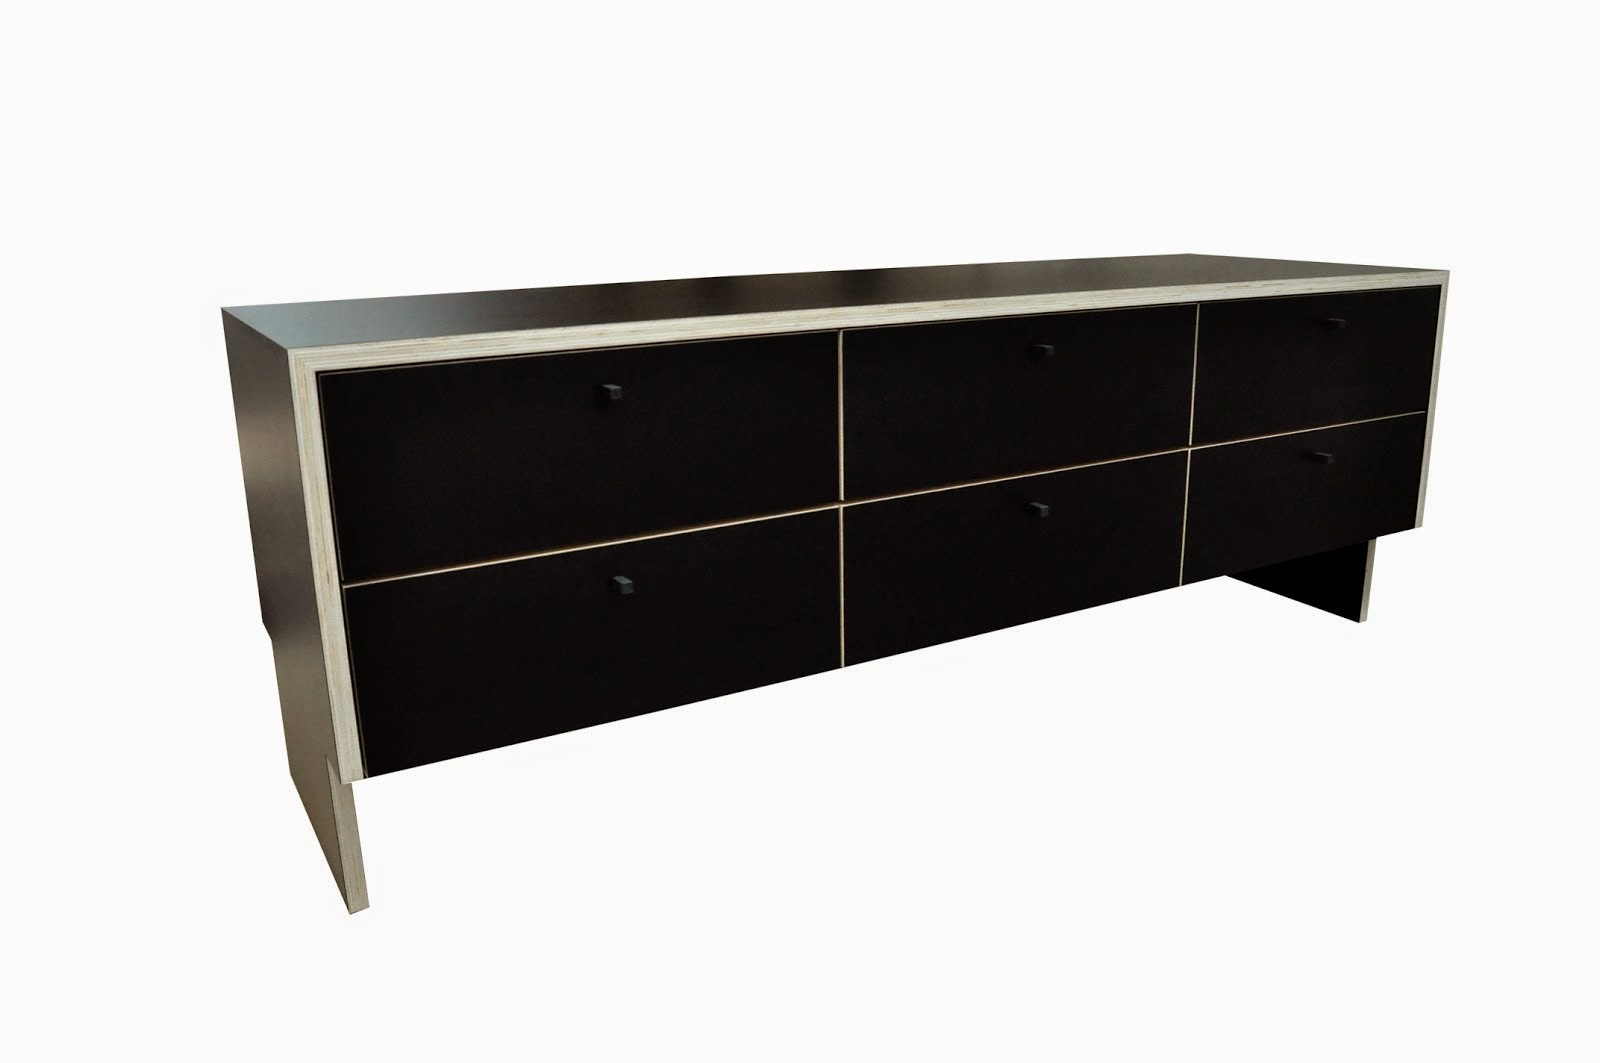 Hagge Tv Bank Tvmeubel Wit Fabulous Ikea With Tvmeubel Wit Top Product